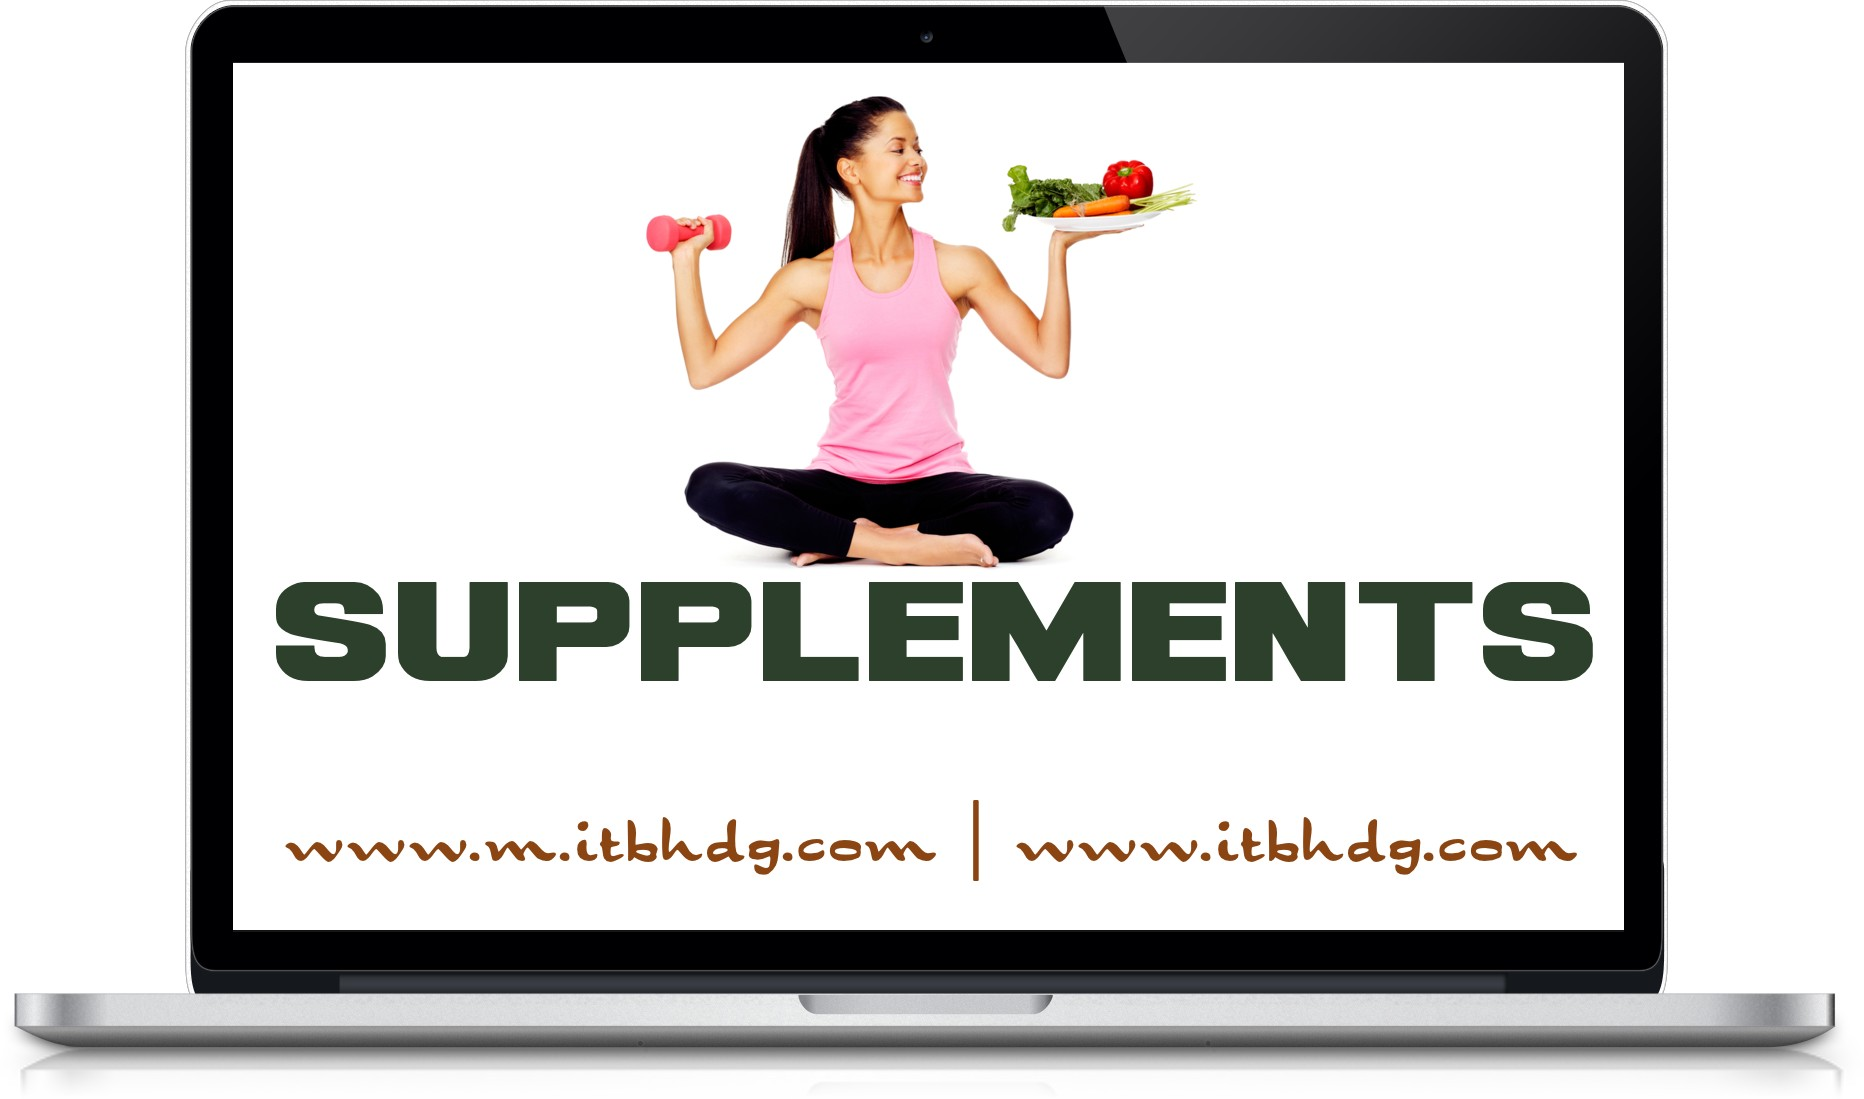 FDA Registration | INITIAL | DIETARY SUPPLEMENTS COMPANY | CLICK & SAVE 75% | www.m.itbhdg.com | www.itbhdg.com